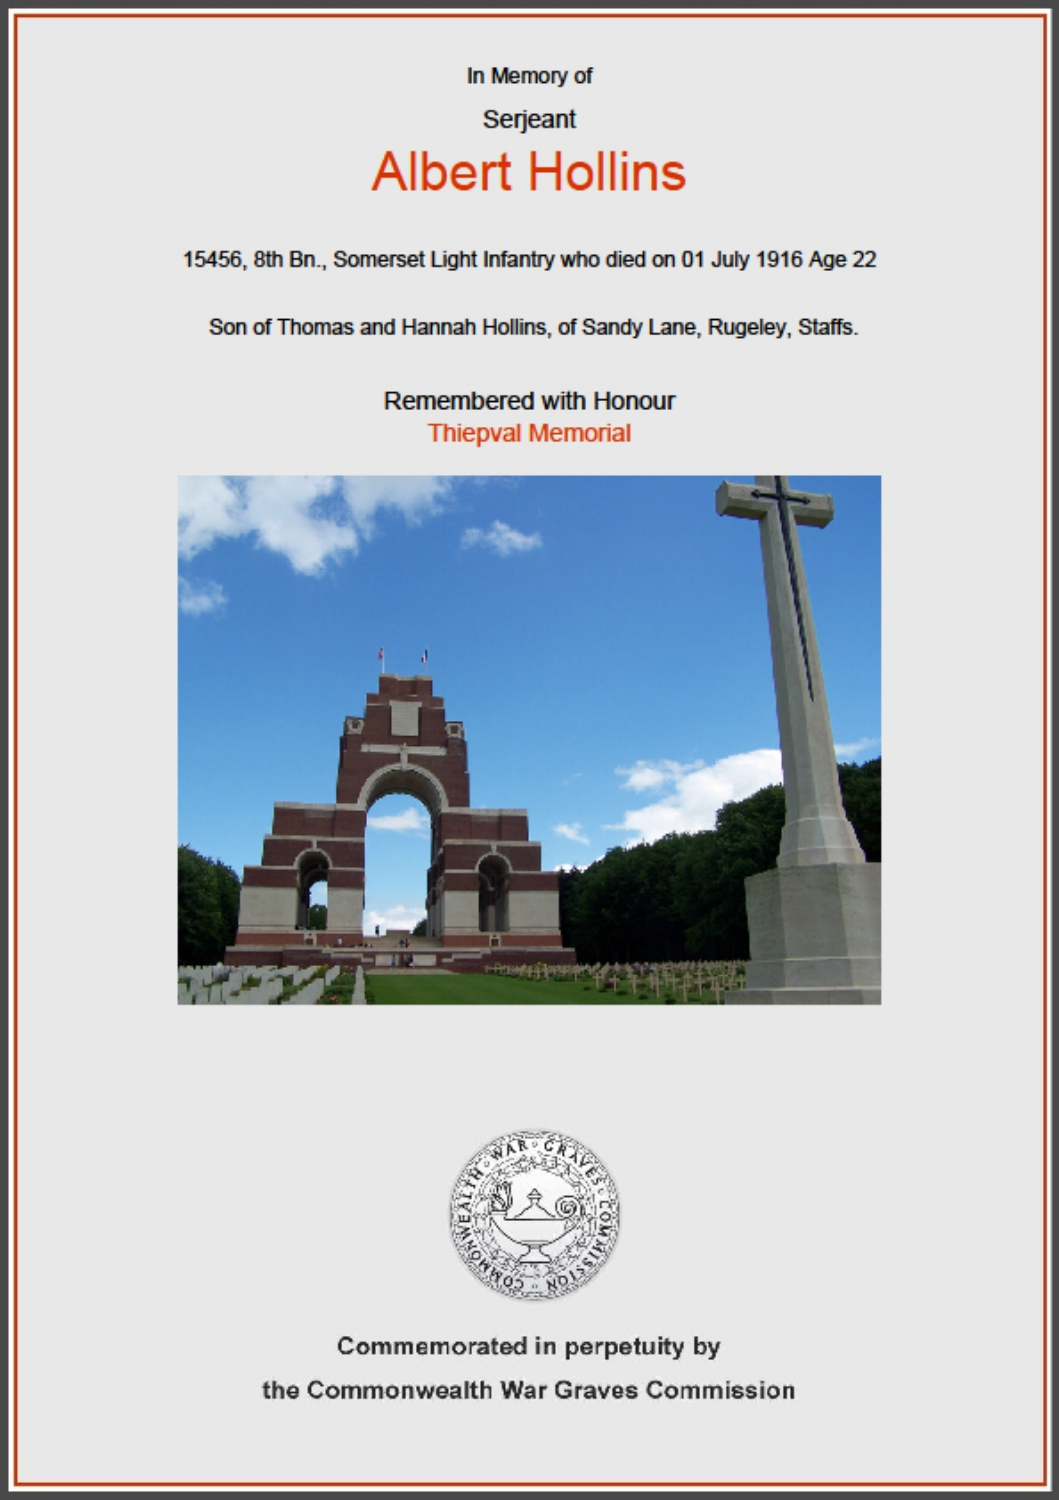 Commemorative certificate for 15456 Sergeant Albert Hollins of the 8th Battalion Somerset Light Infantry who died on 1 July 1916 at the age of 22.